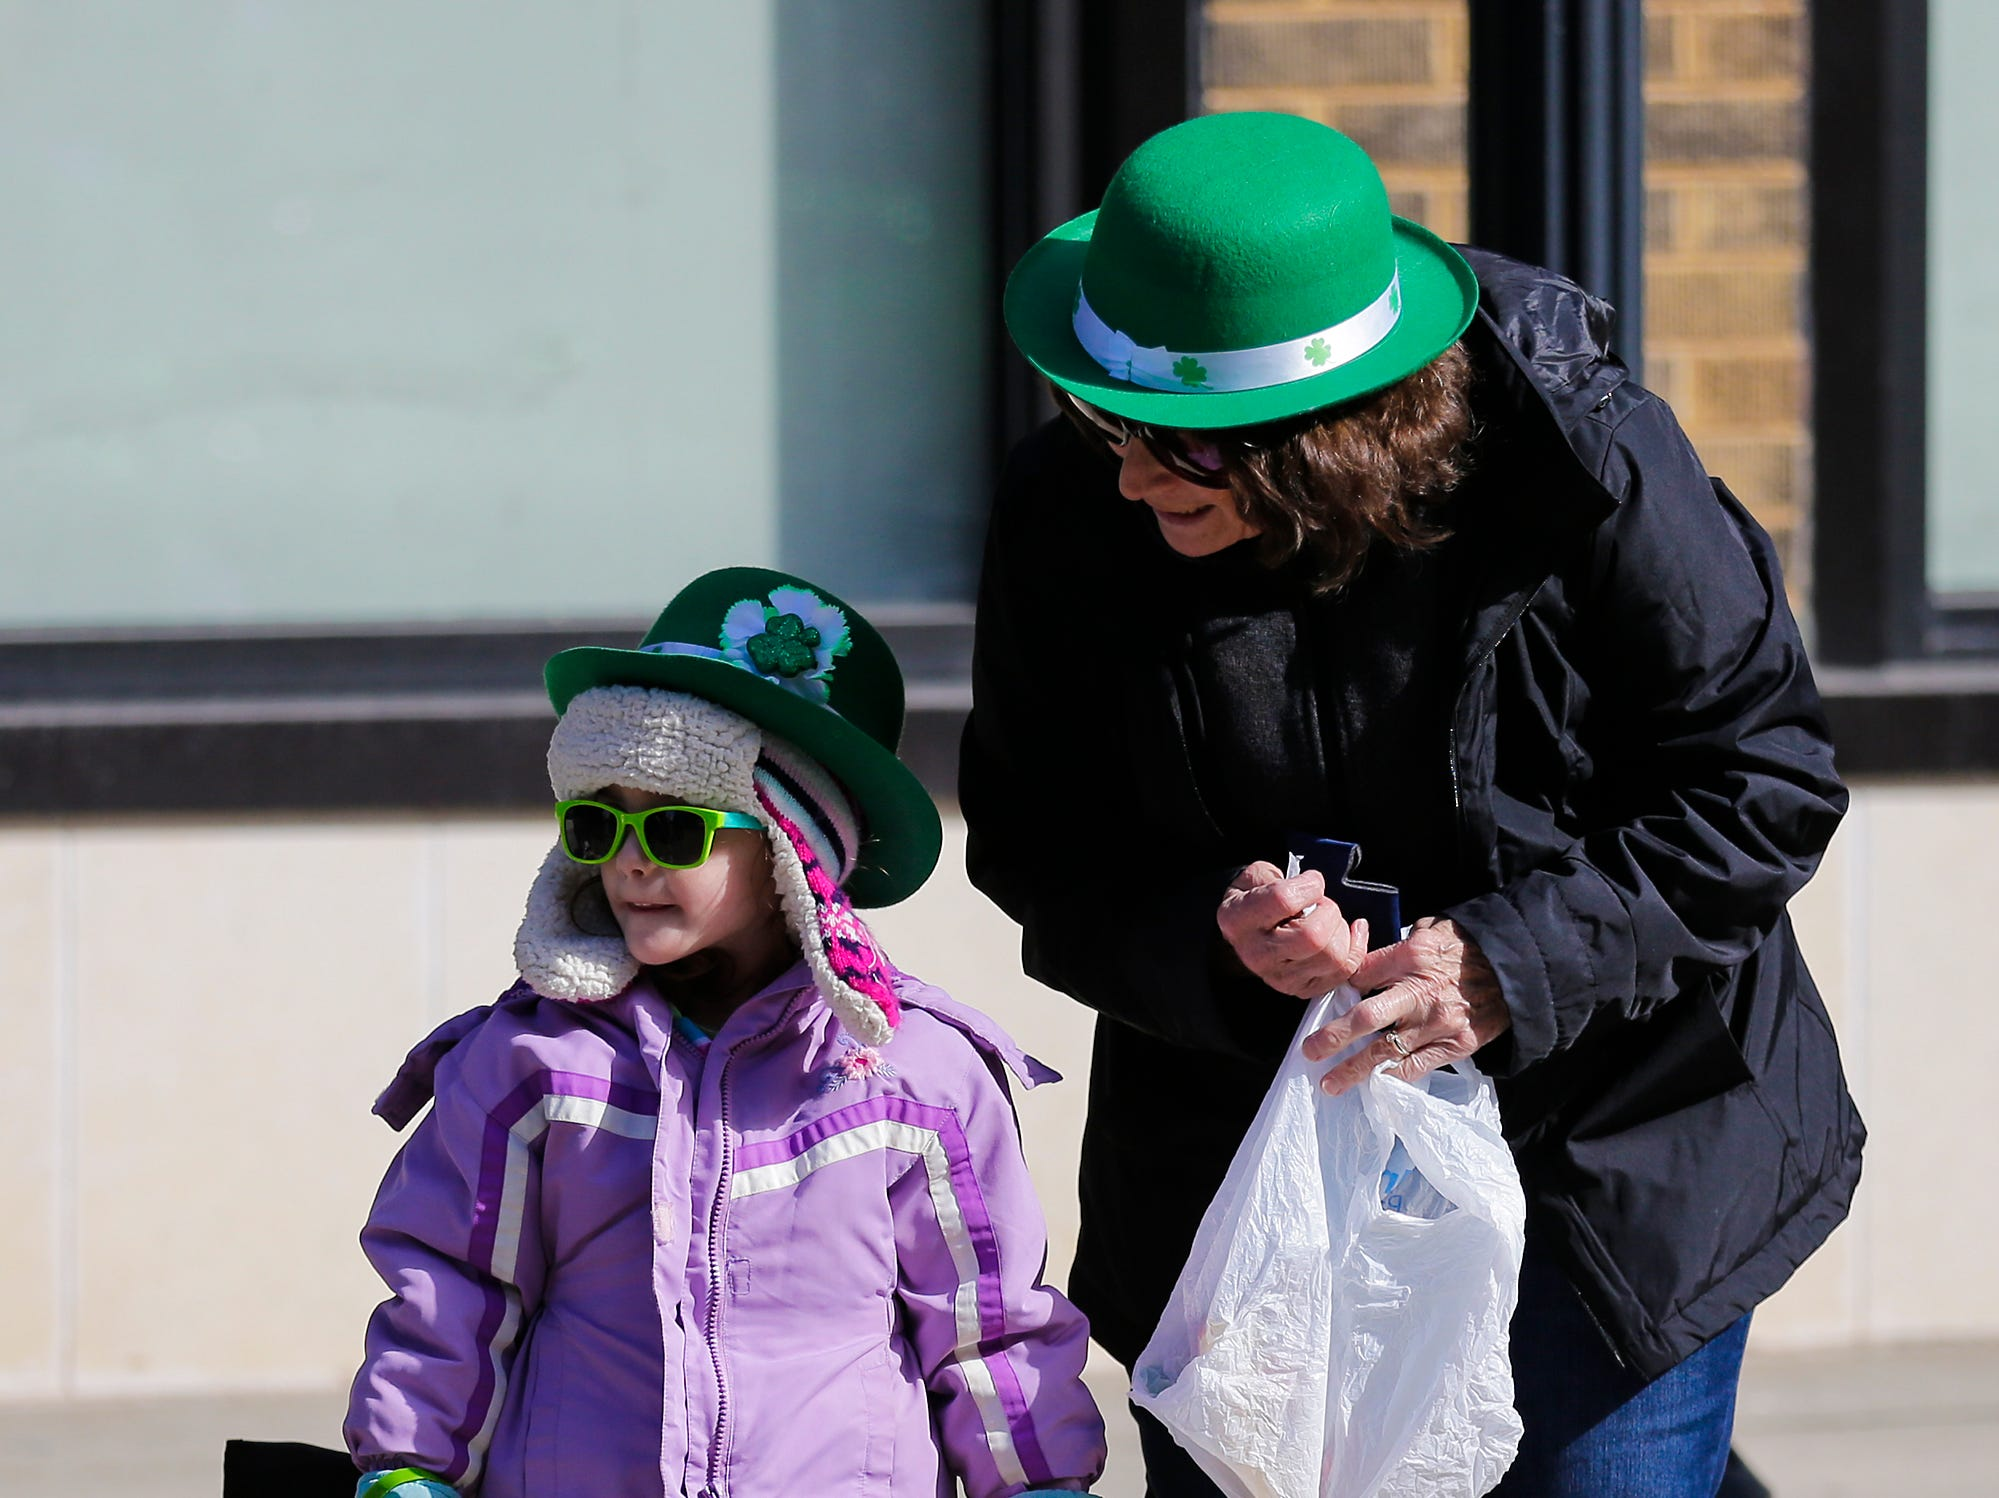 Madilynn Beuchel and Linda Kollmann watch the City of Fond du Lac St. Patrick's Day Parade Saturday, March 16, 2019 on Main Street in downtown Fond du Lac. Hundreds of people lined the street to watch over 50 parade participants. Doug Raflik/USA TODAY NETWORK-Wisconsin